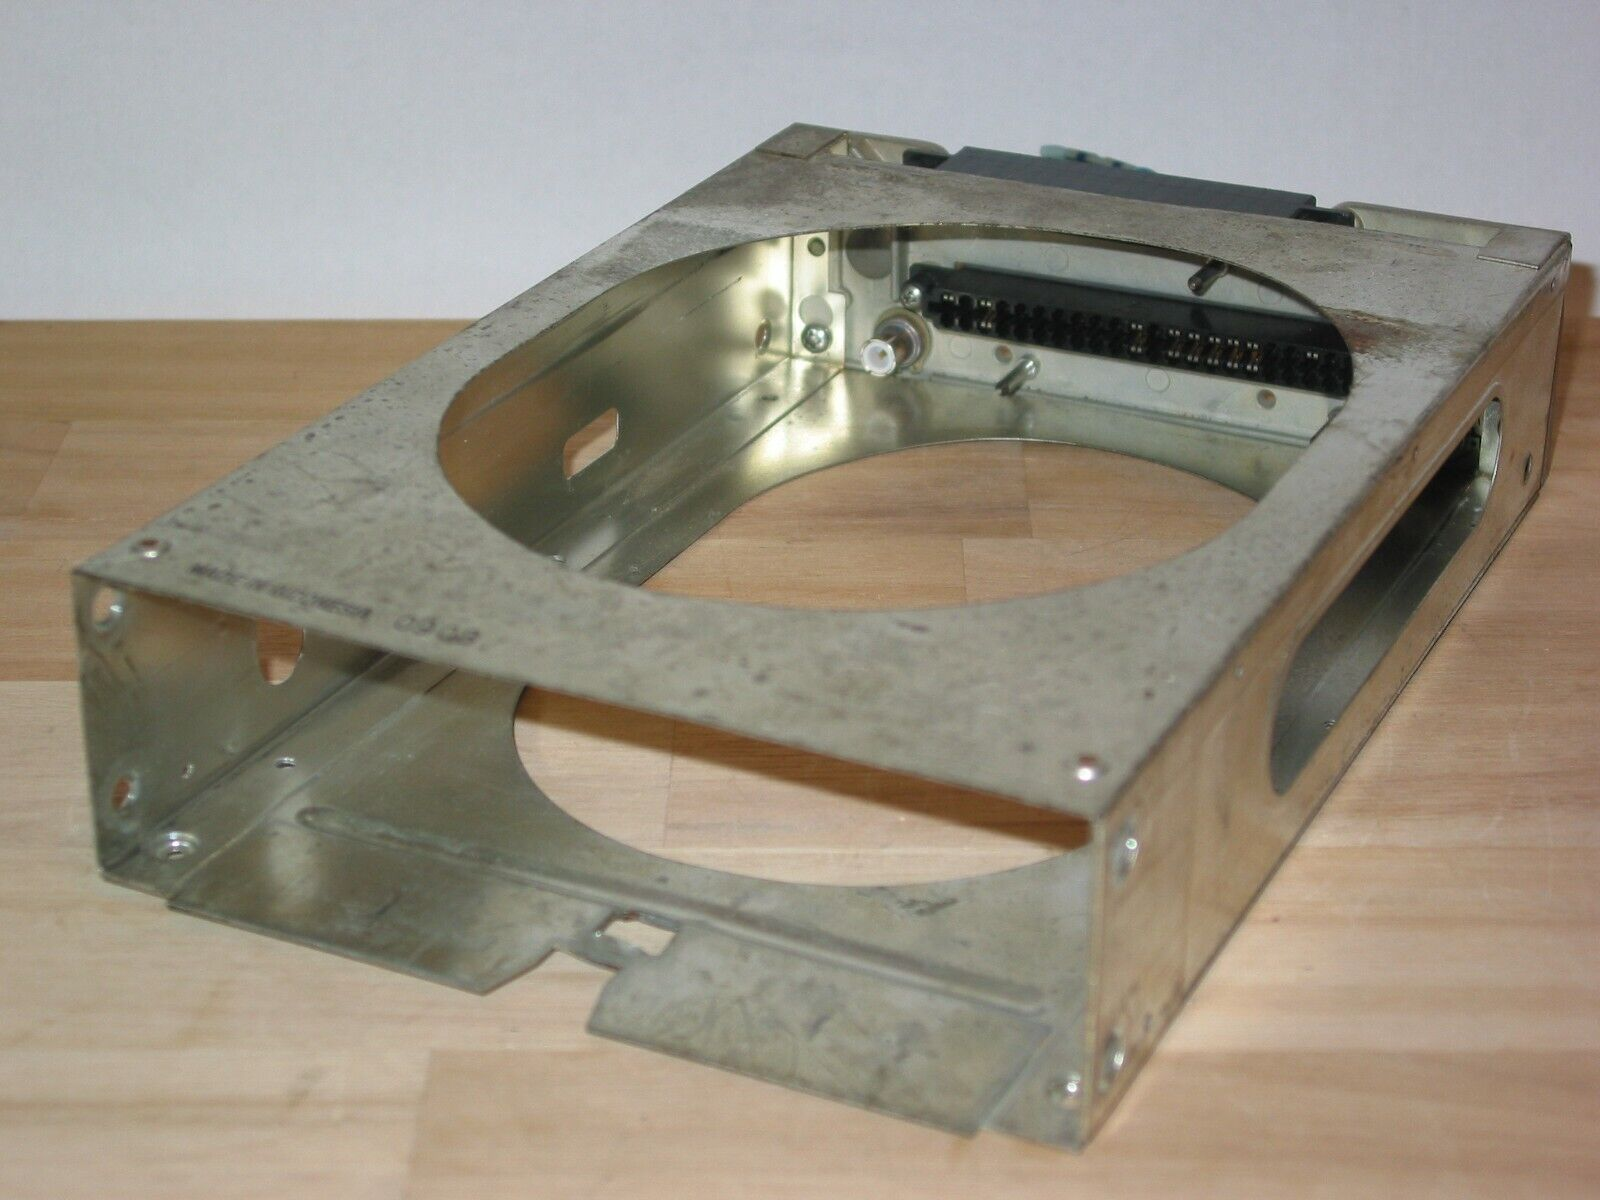 BENDIX KING KX-165A !!! TRAY WITH BACKPLATE WIRING CONNECTORS AND ANTENNAS !!!